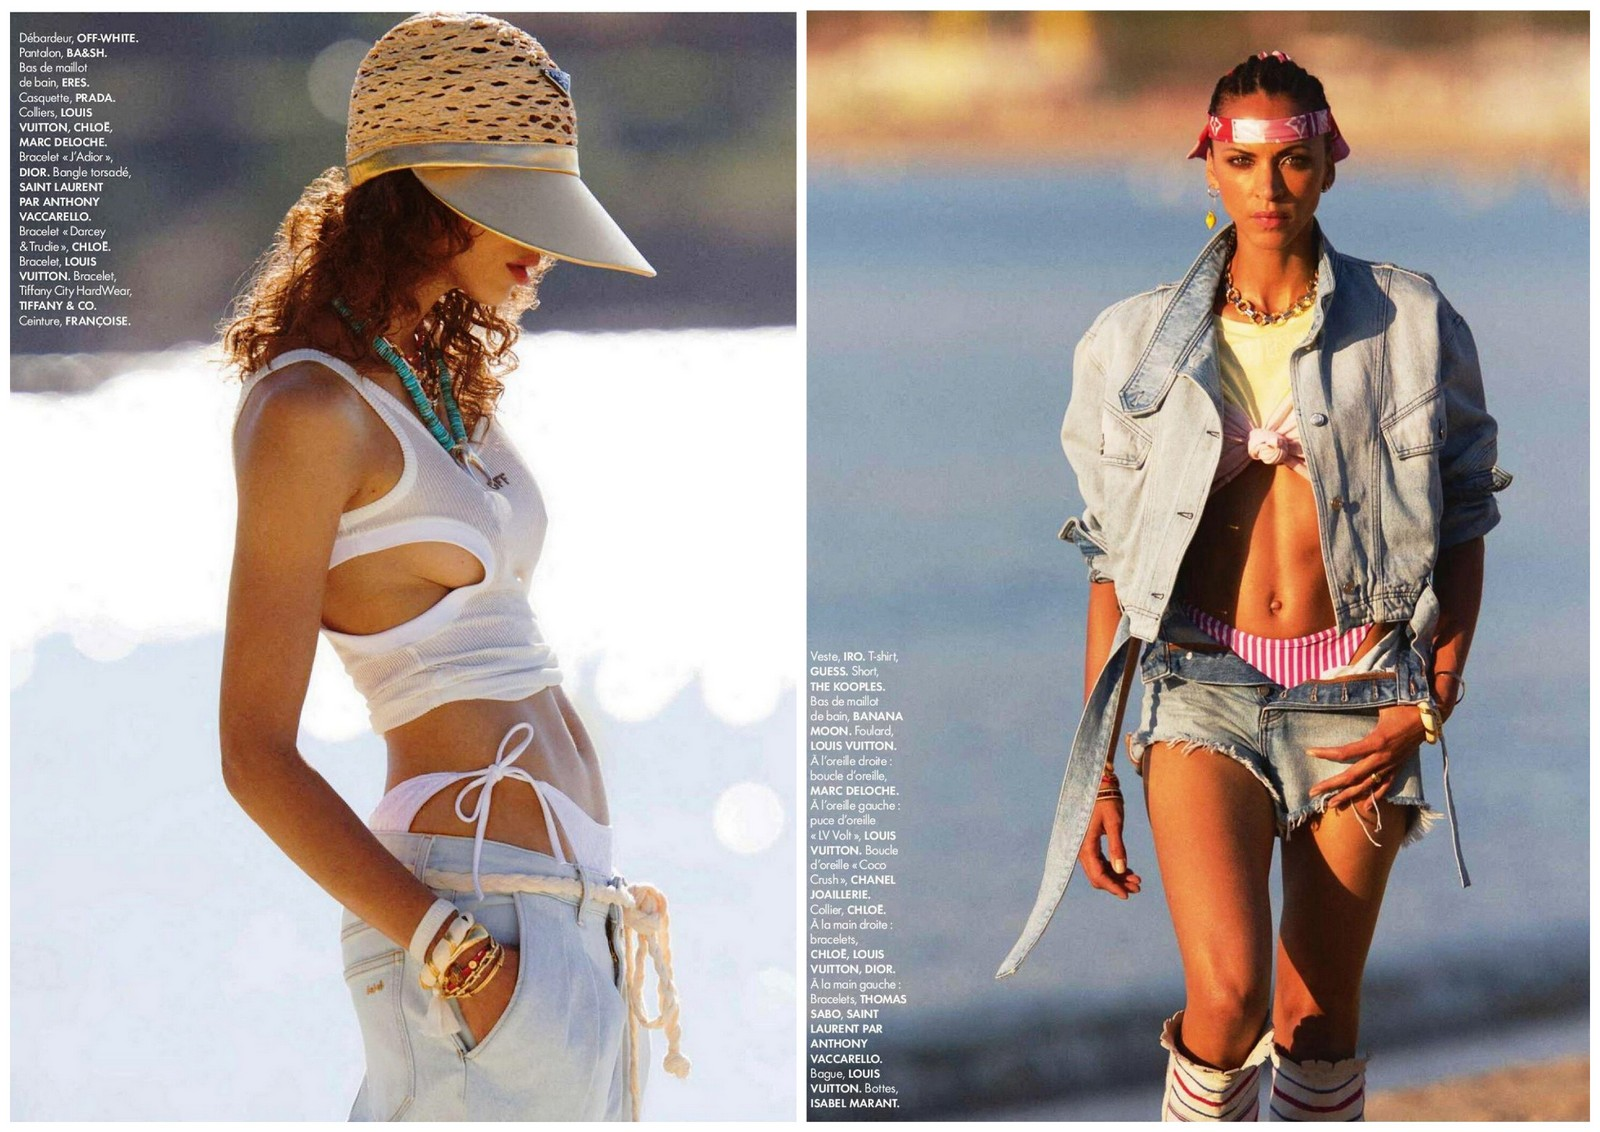 hans feurer,elle,photographe,mode,photographe de mode,iman,stephanie seymour,bikinis,bathing suits,maillot de bain,noème lenoir